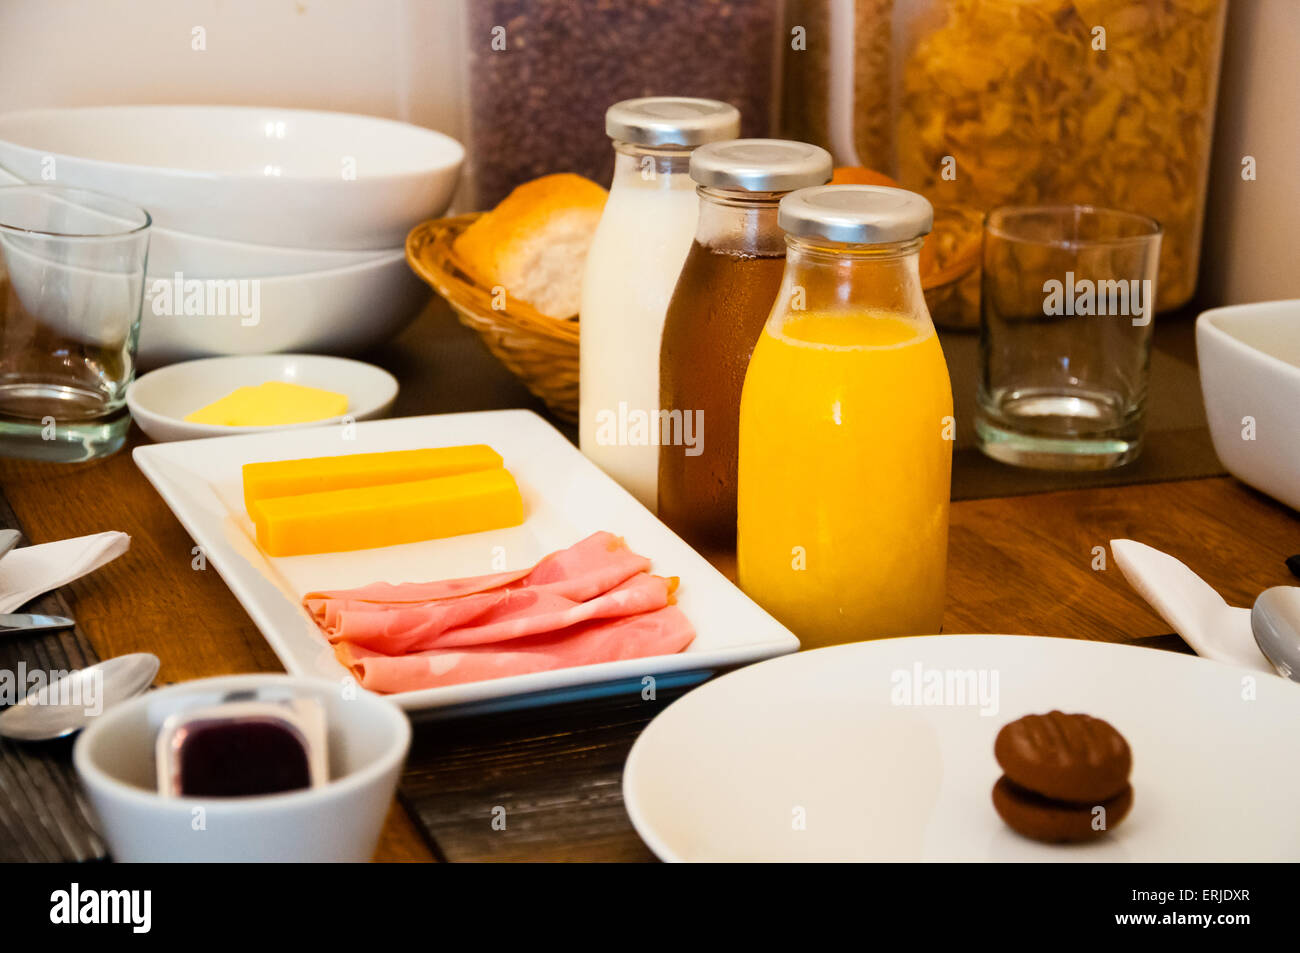 continental breakfast table setting at a hotel & continental breakfast table setting at a hotel Stock Photo ...